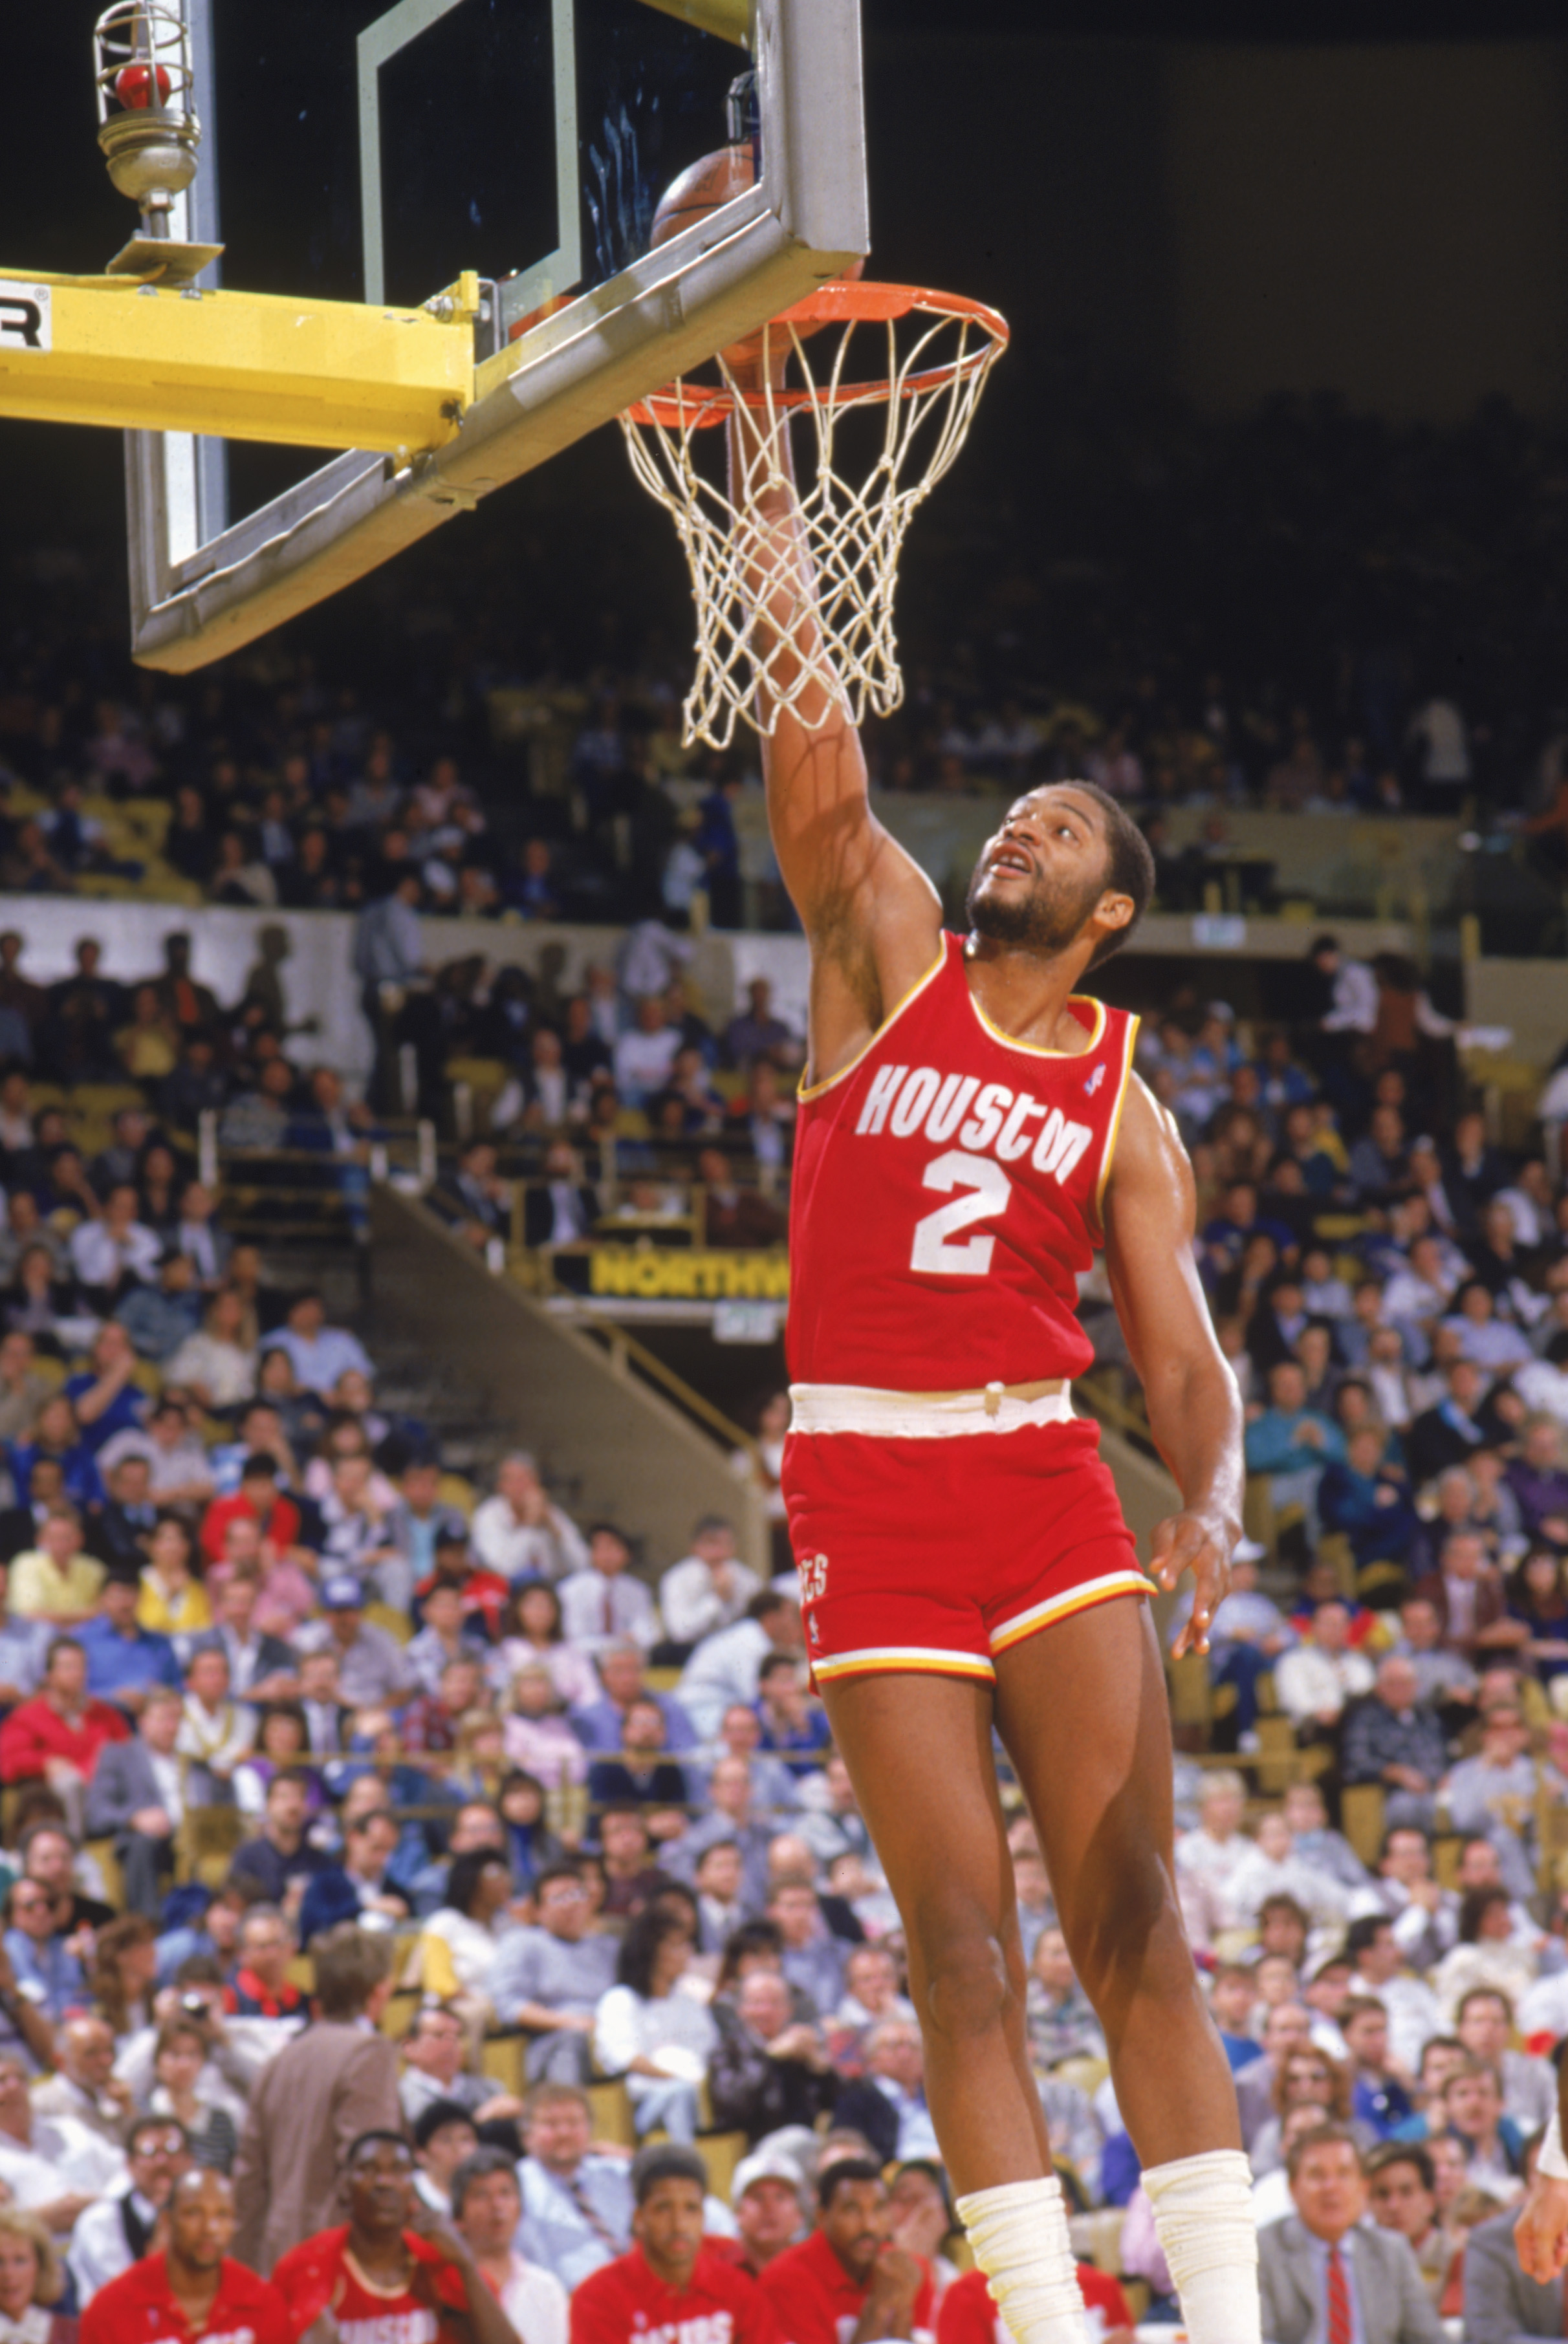 INGLEWOOD -1987:  Joe Barry Carroll #2 of the Houston Rockets dunks during a game in the1987-88 season. NOTE TO USER: User expressly acknowledges and agrees that, by downloading and/or using this Photograph, User is consenting to the terms and conditions